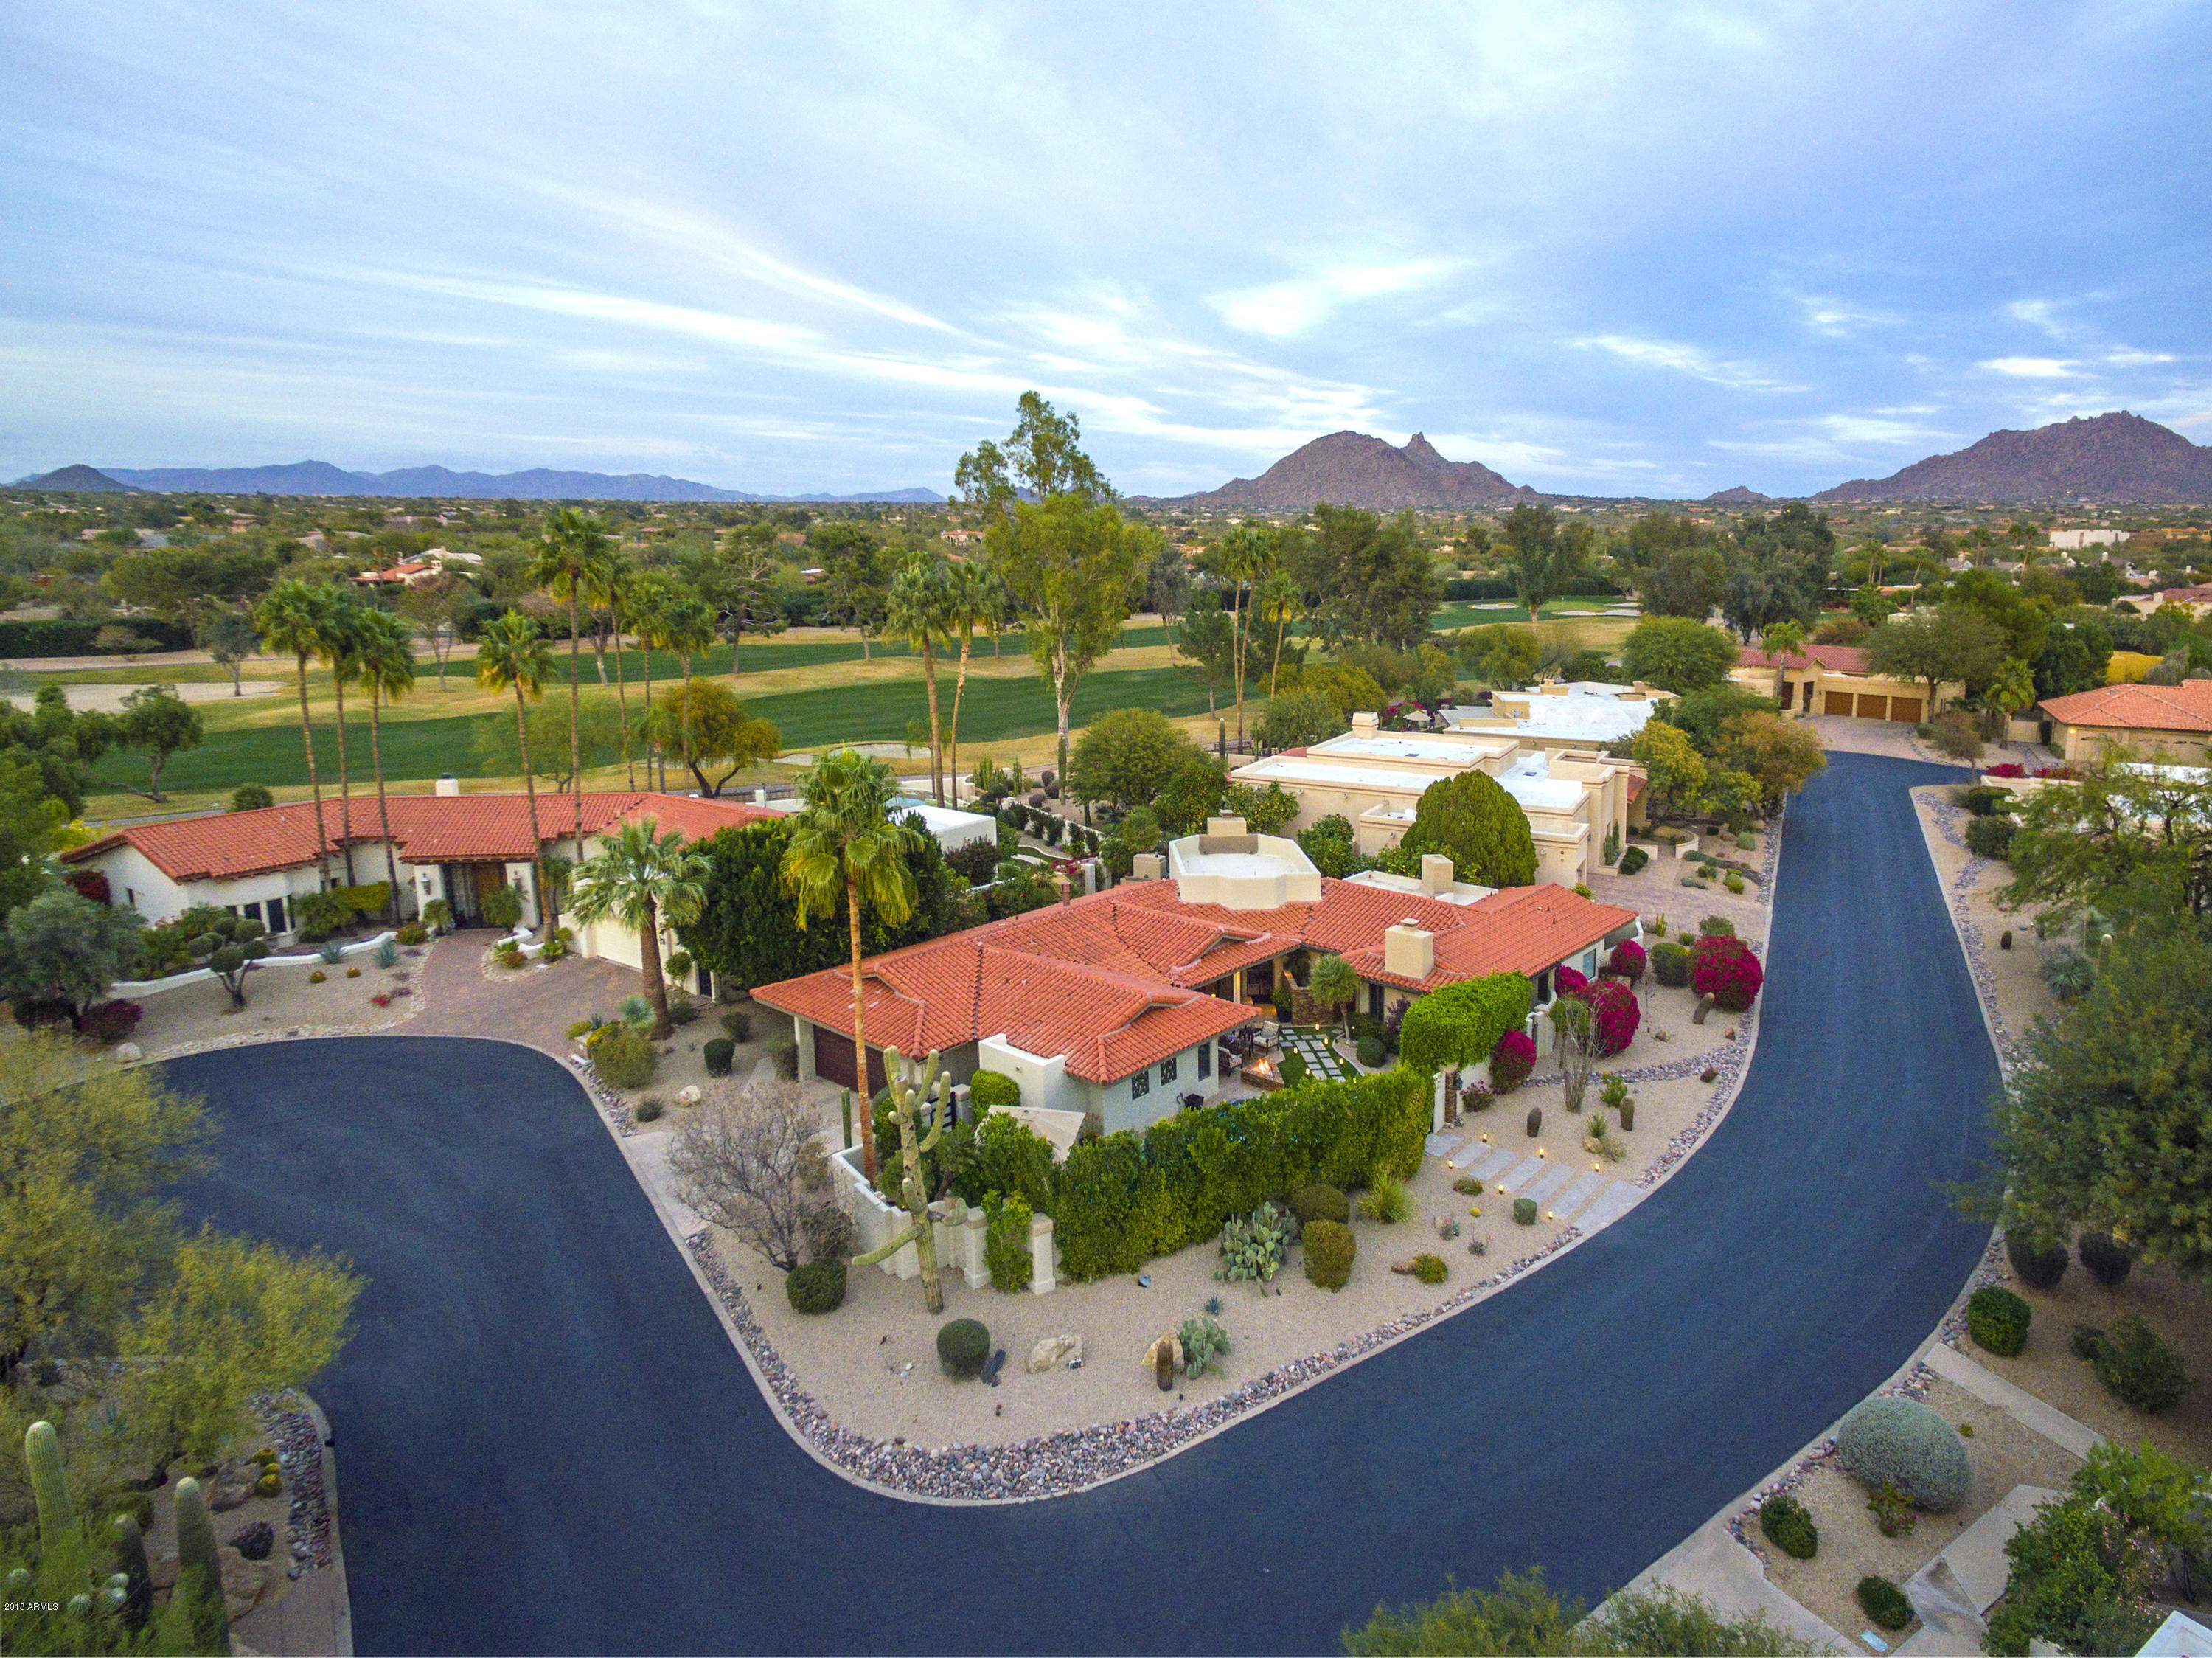 MLS 5830437 8256 E CALLE DE ALEGRIA --, Scottsdale, AZ 85255 Scottsdale AZ Pinnacle Peak Country Club